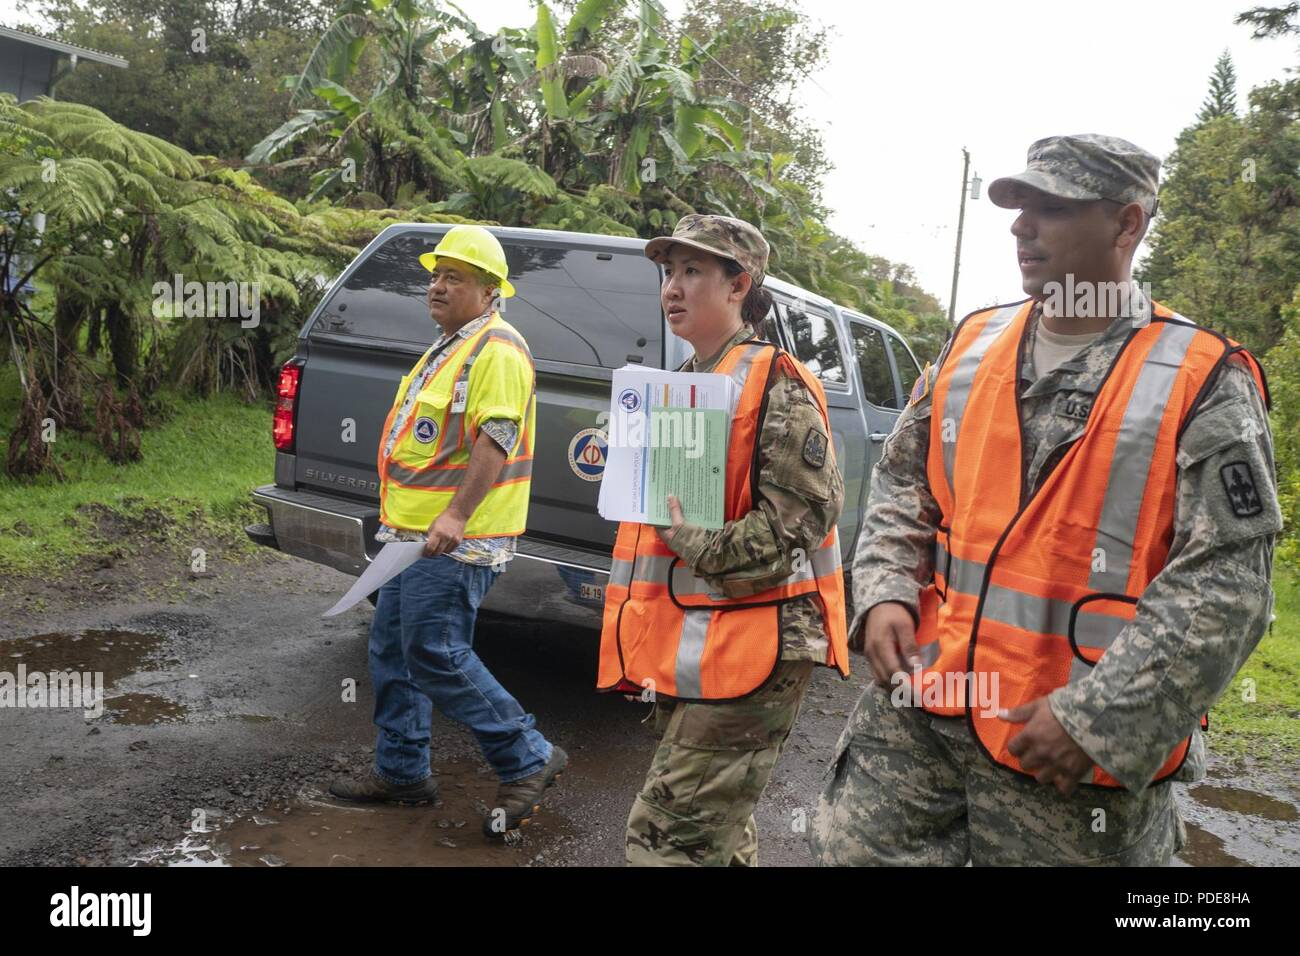 William Hanson, County of Hawaii Civil Defense administrative officer, Spc. Anyanee Sangchan and Sgt. Ambrose Leon, representatives of Task Force Hawaii, approach residents of the Volcano community May 17, 2018, at Upper Puna District, Hawaii. Teams went door-to-door to inform local residents of the heightened risks, due to the ongoing volcanic activity in the area. - Stock Image